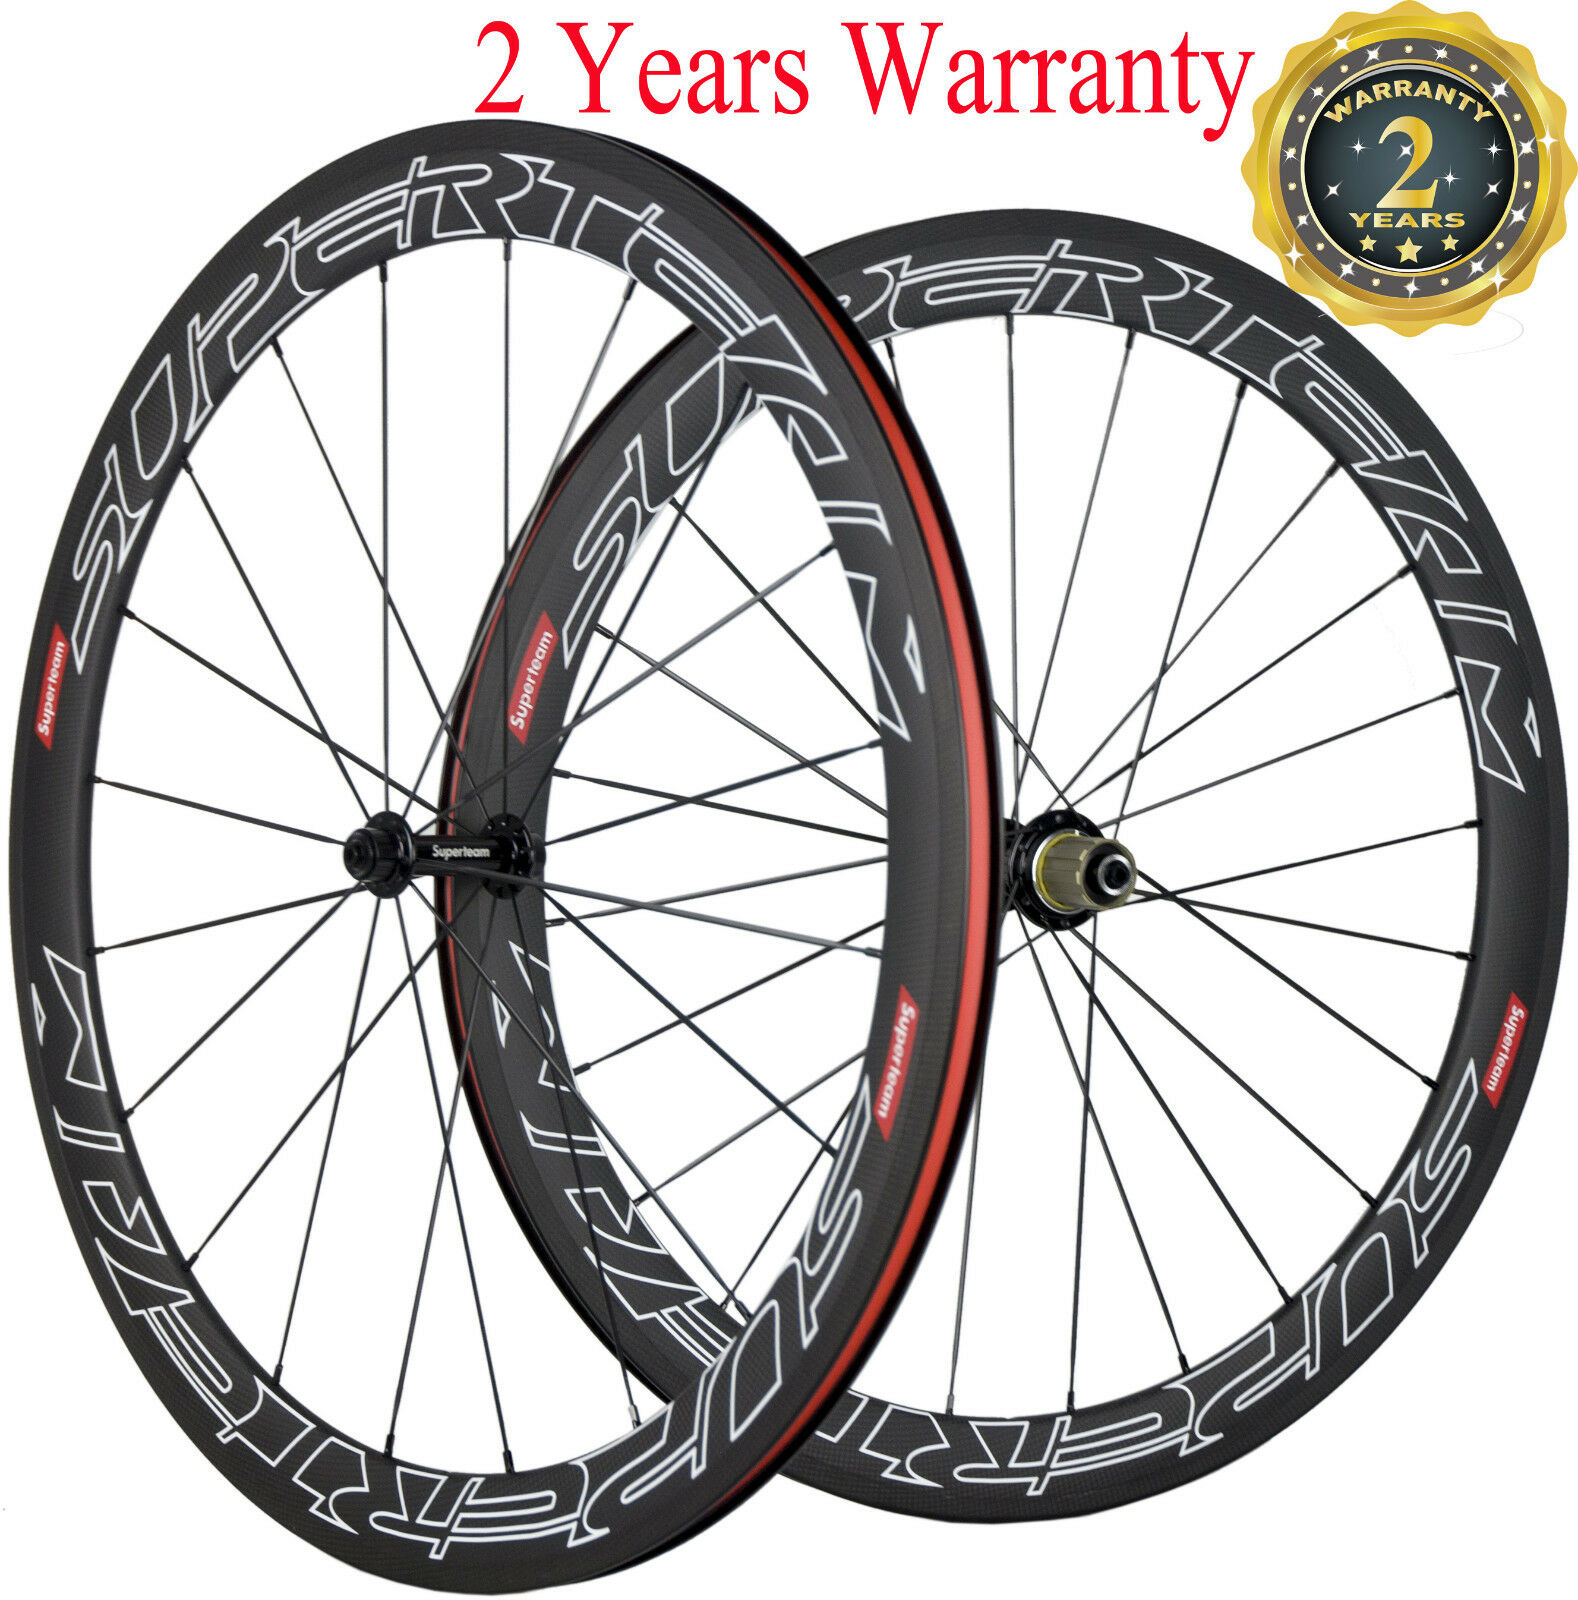 Carbon  Wheels 50mm Clincher Road Bike Cycling Wheelset Carbon Bike Wheels 700C  everyday low prices